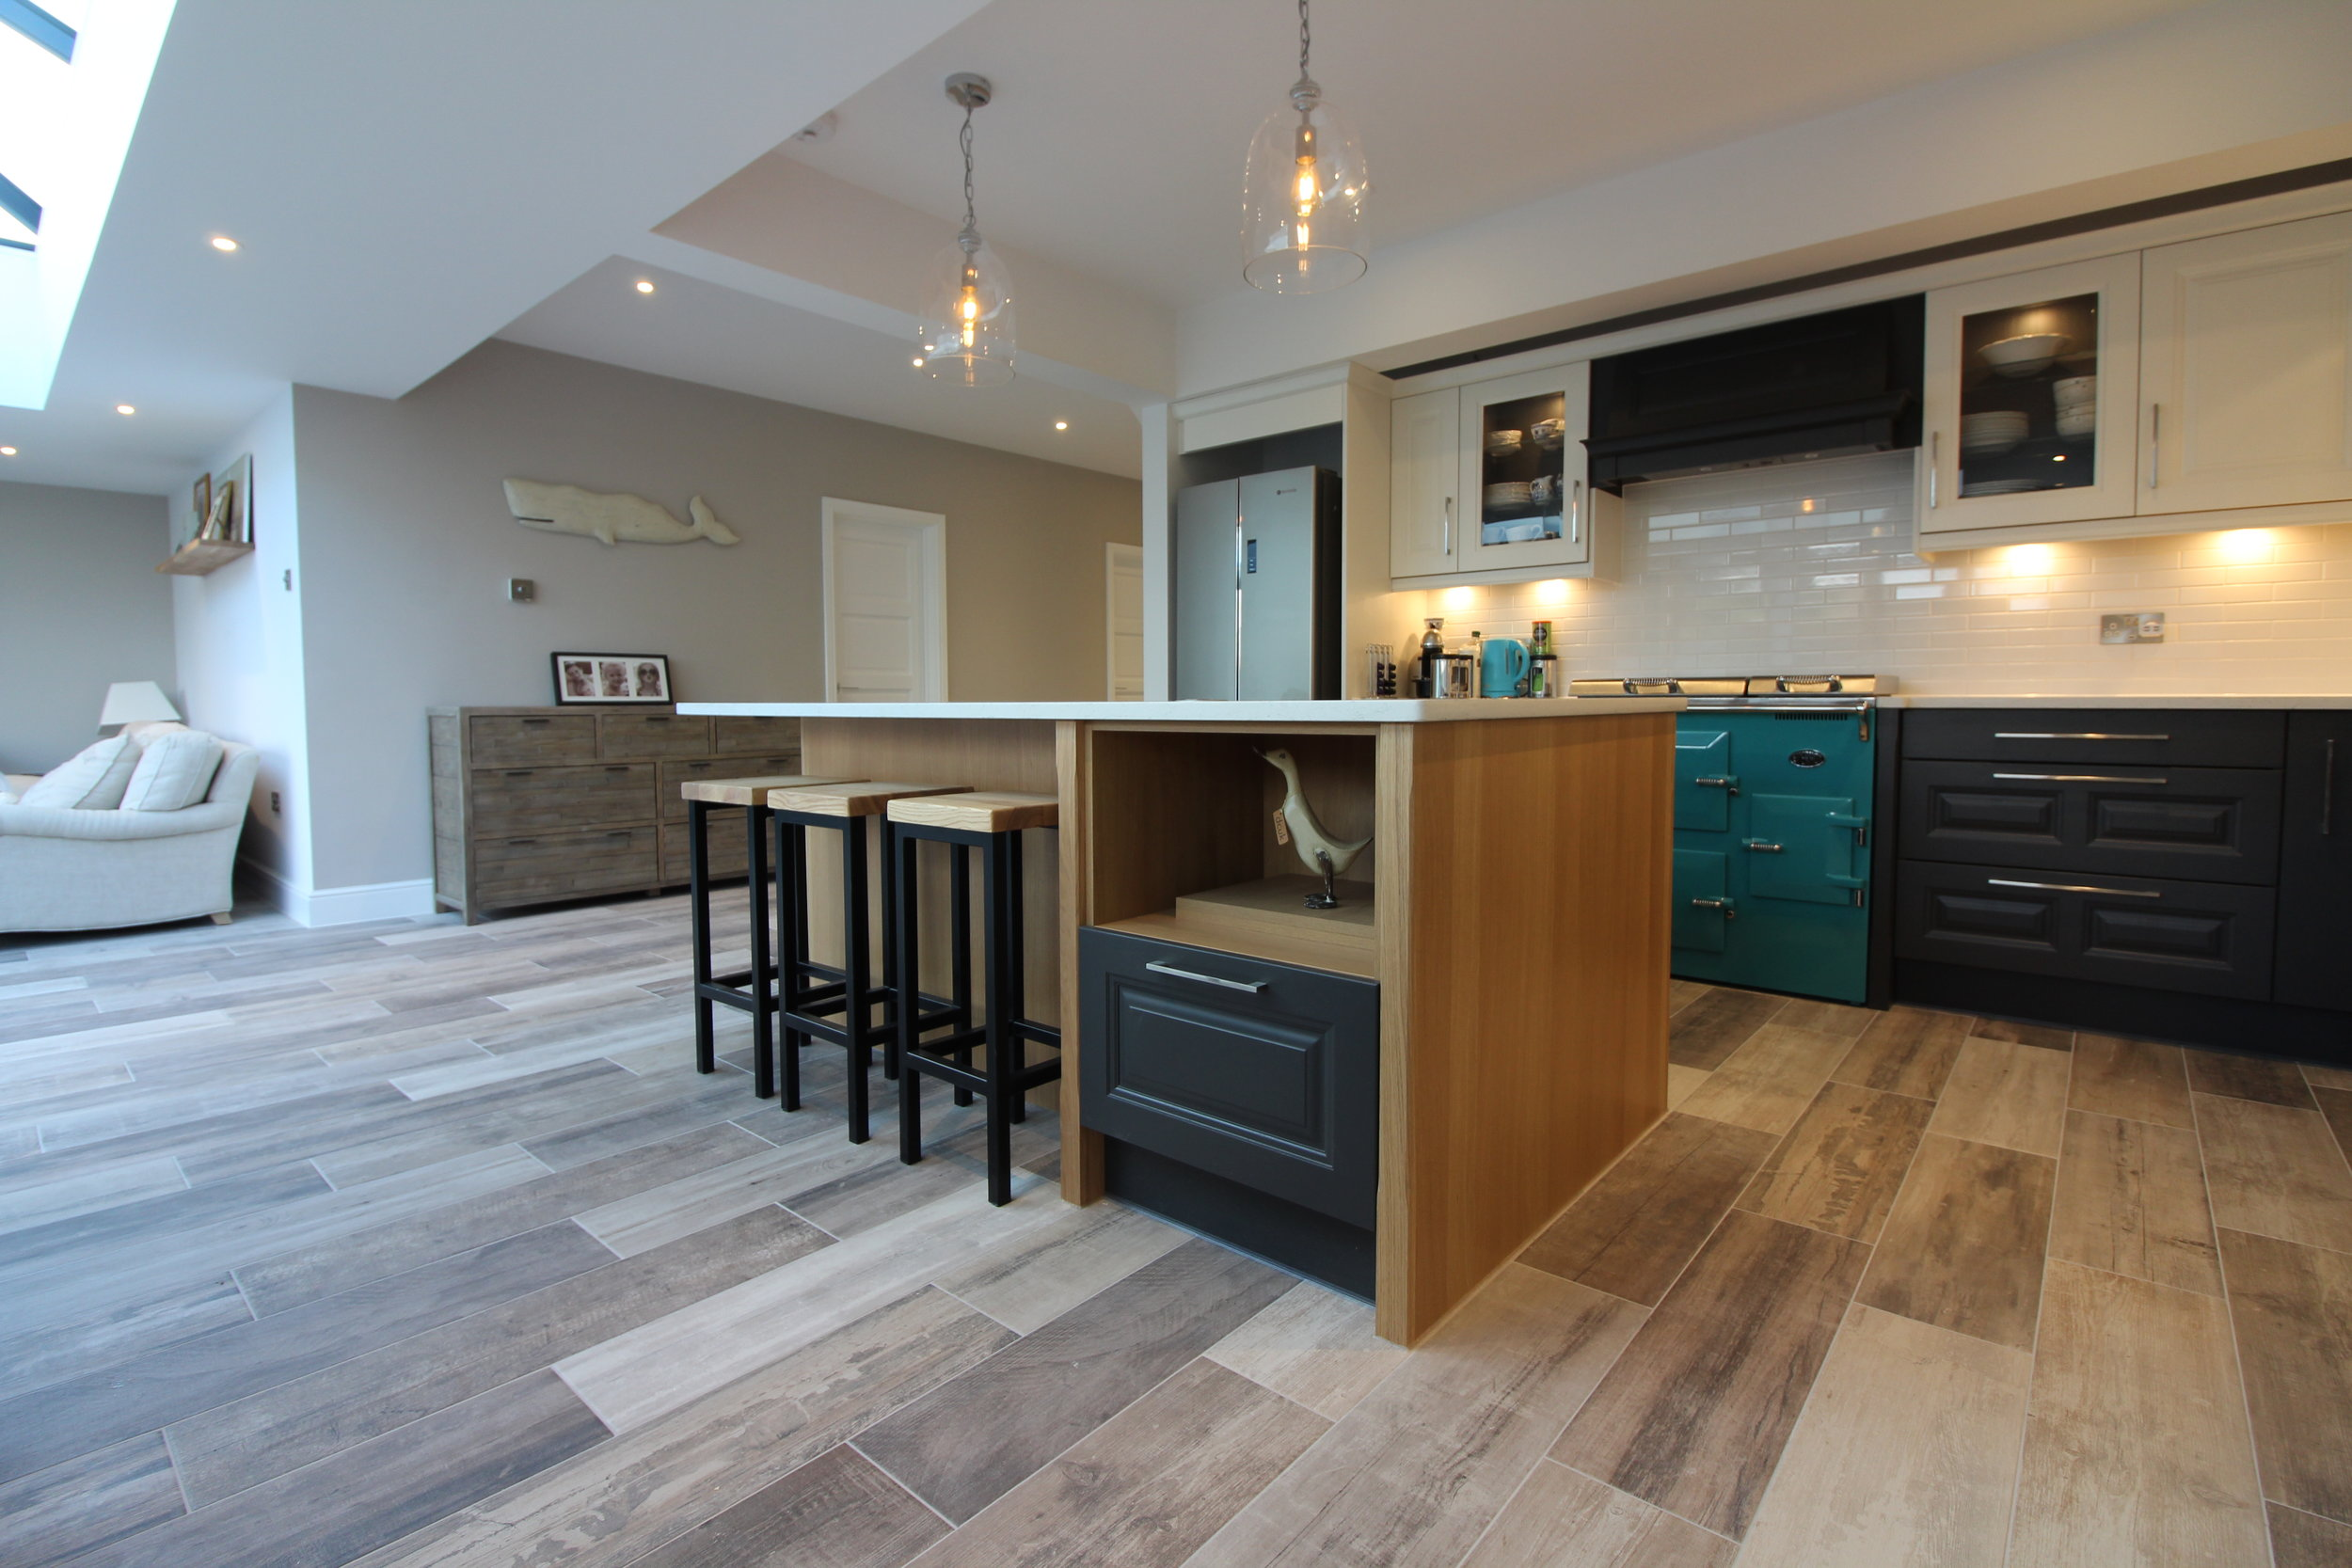 The open plan kitchen and living space featured a large island to act as a relaxed place to eat or socialise.